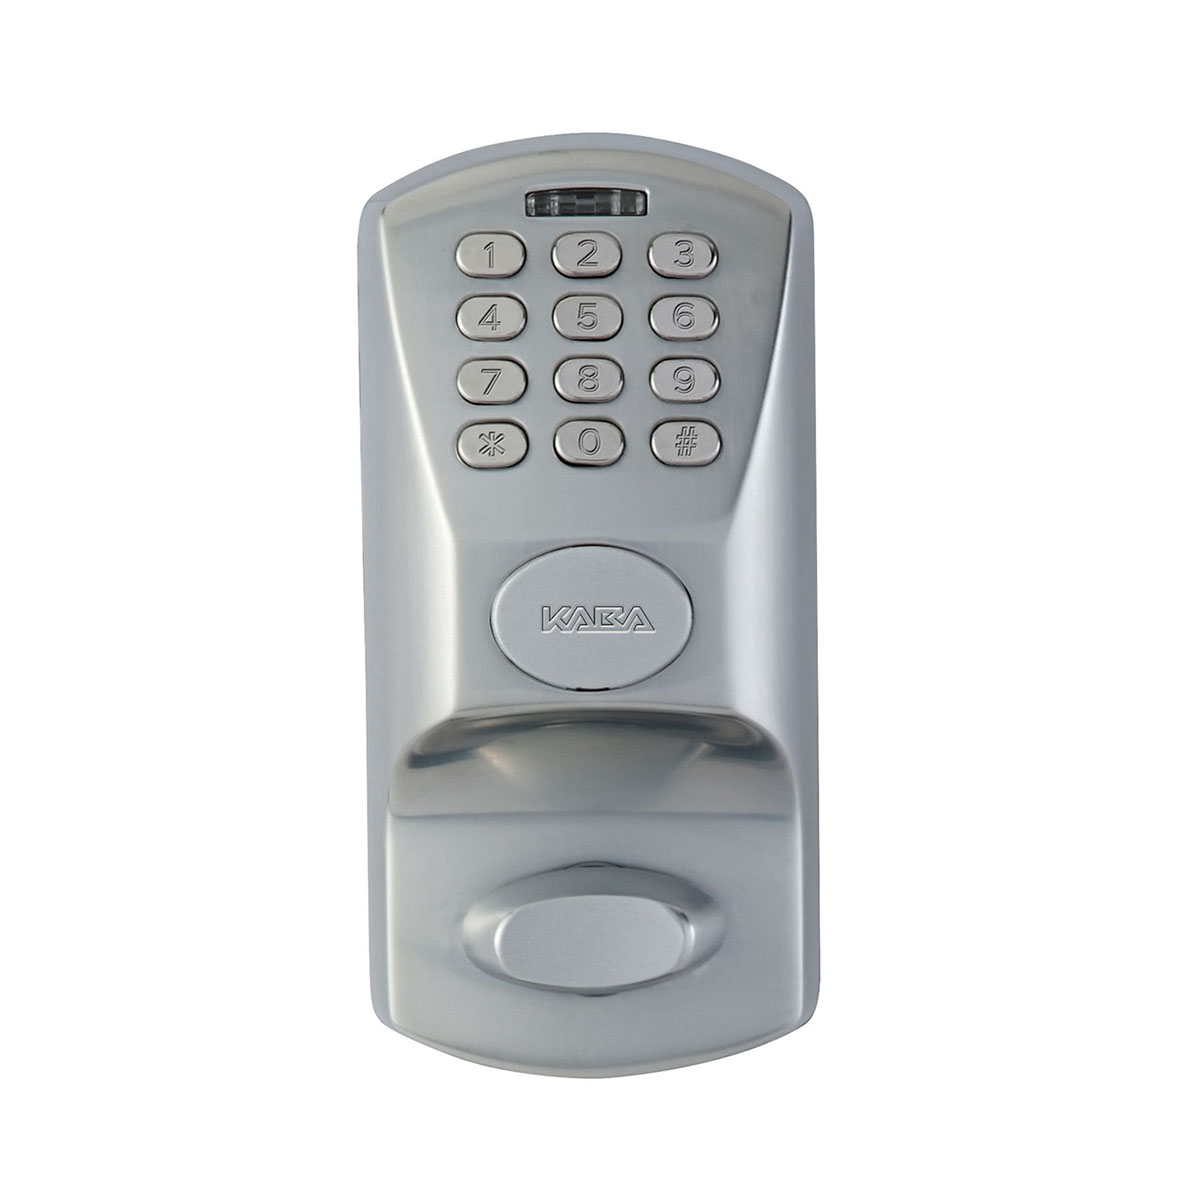 E Plex 1500 Deadbolt Access Amp Data Systems